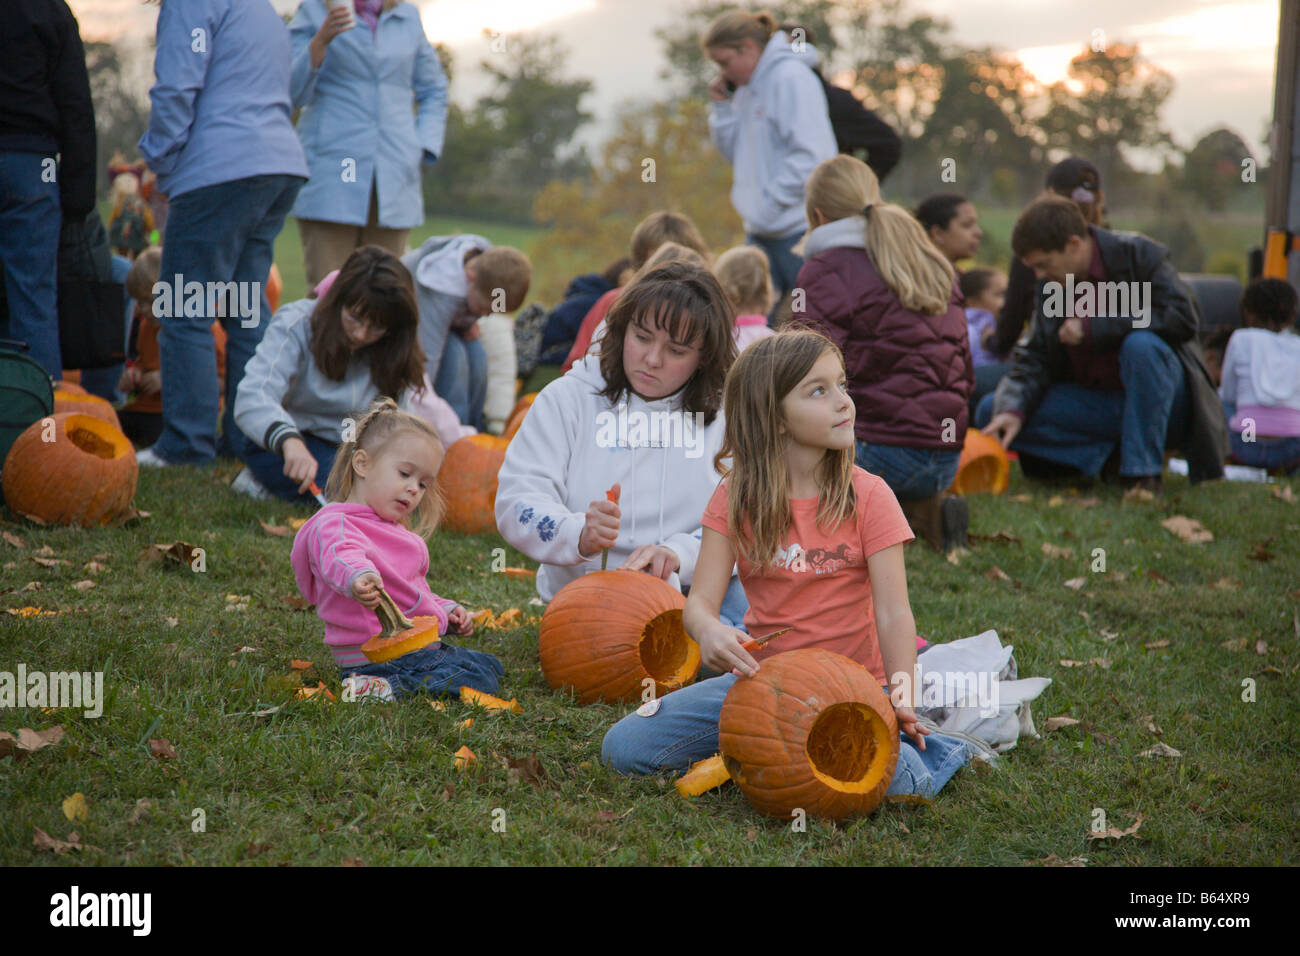 Families carve pumpkins at the 2008 Shenandoah Valley Hot Air Balloon and Wine Festival in Millwood, Virginia - Stock Image